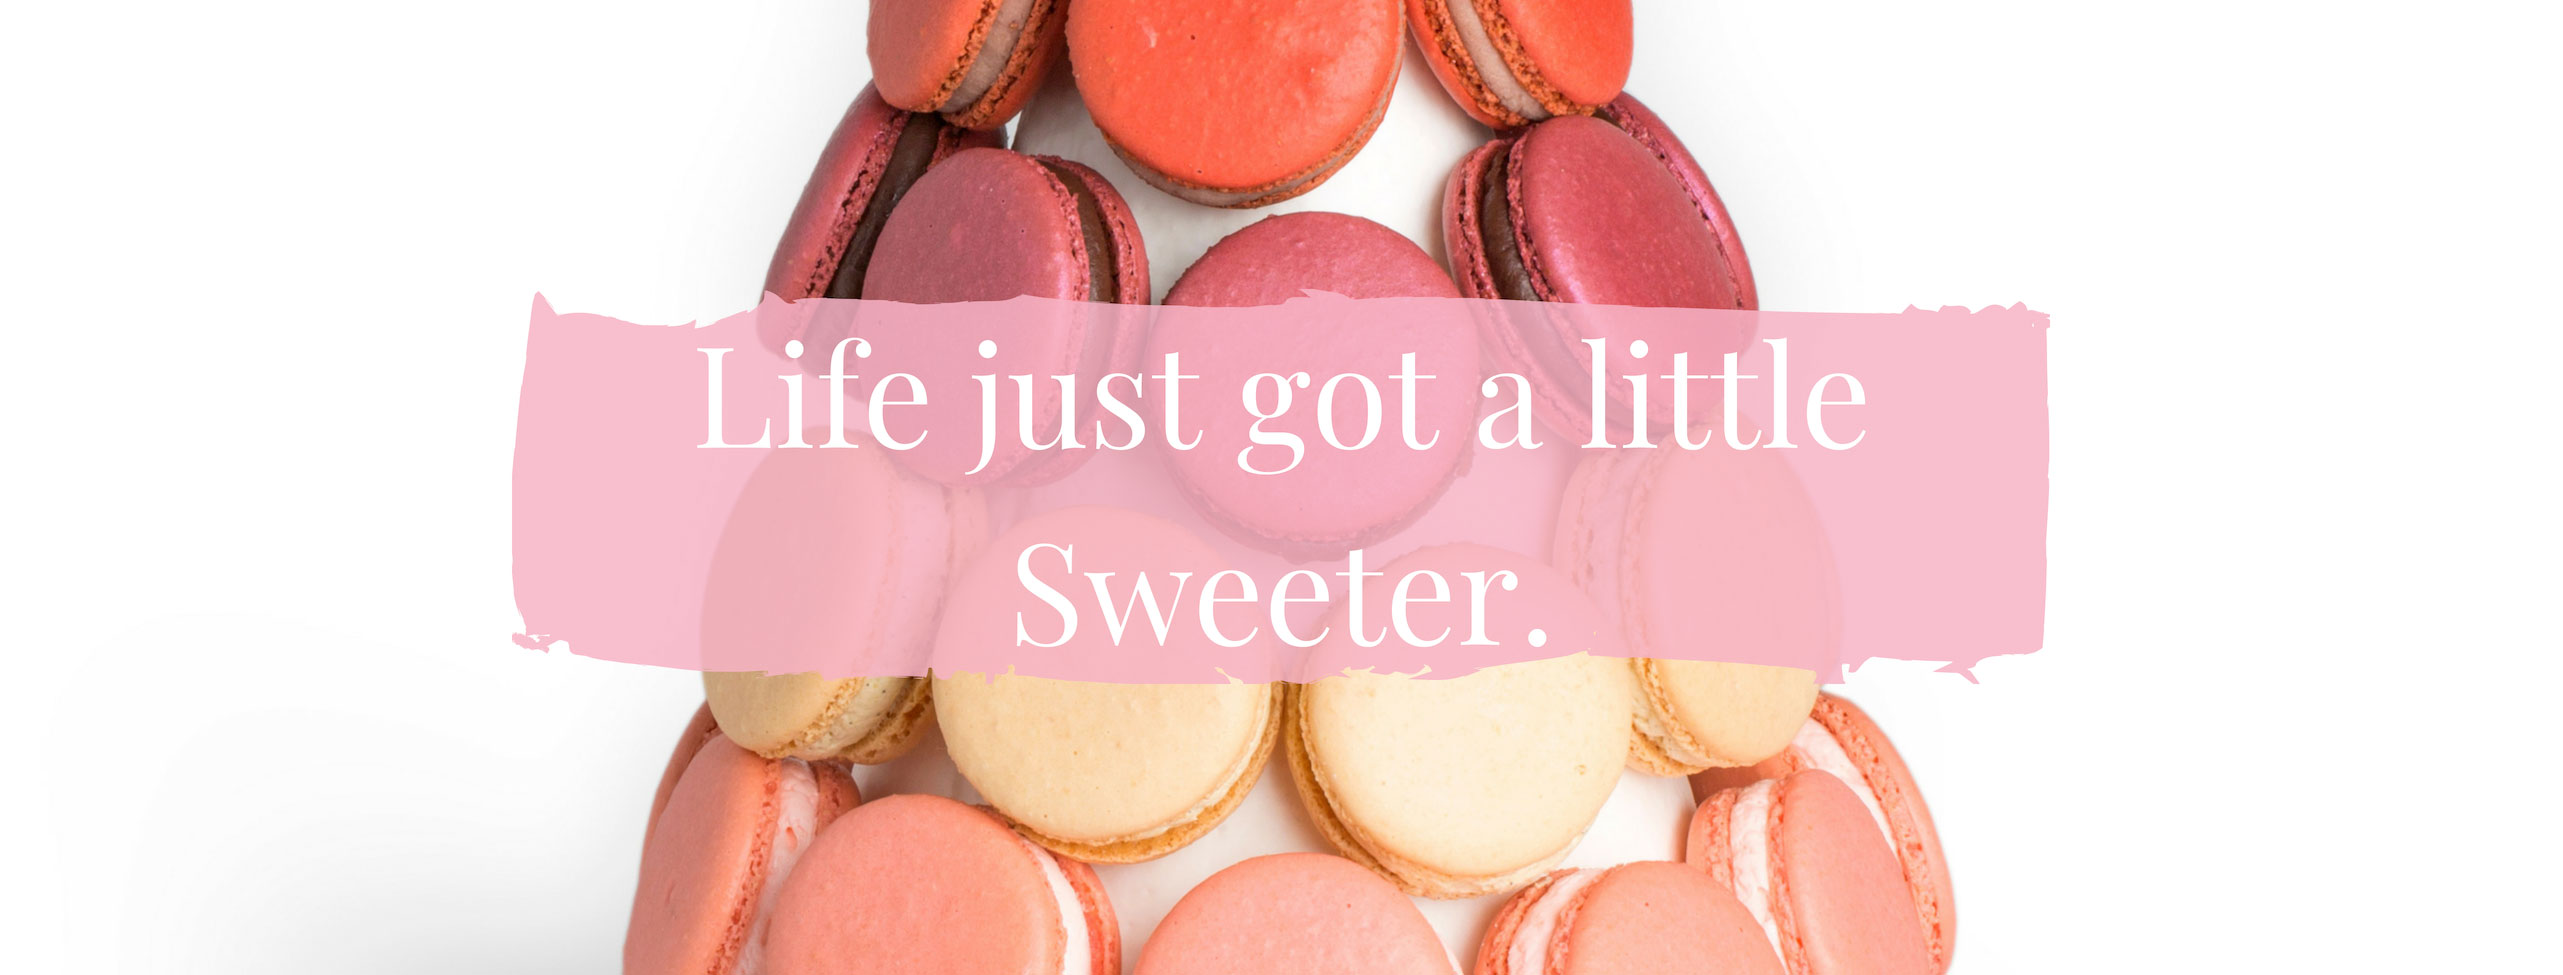 Life juste got a little sweeter